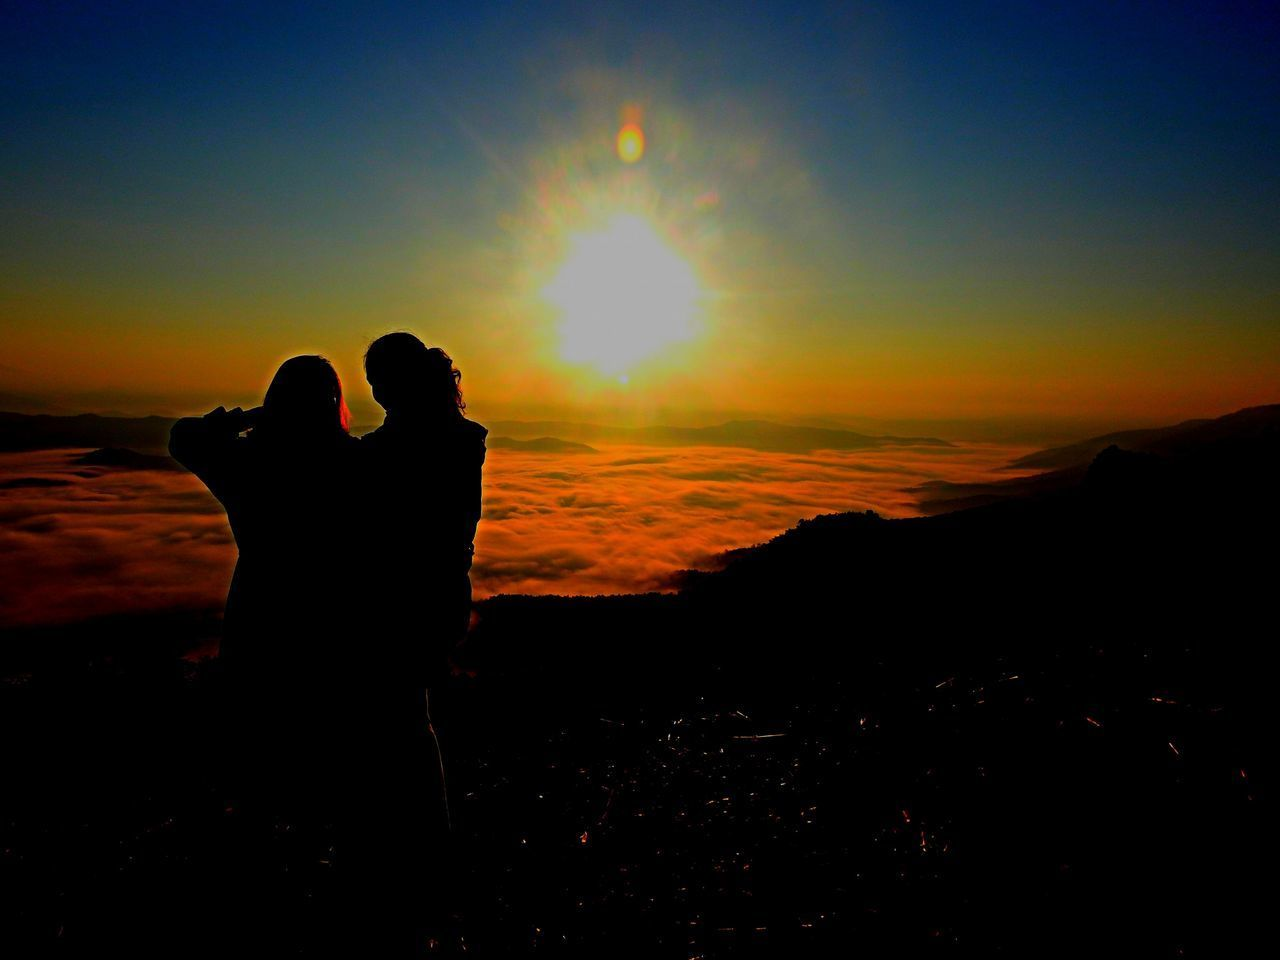 sunset, silhouette, sky, real people, orange color, leisure activity, nature, bonding, beauty in nature, lifestyles, togetherness, love, men, two people, positive emotion, people, standing, women, tranquility, tranquil scene, outdoors, couple - relationship, sun